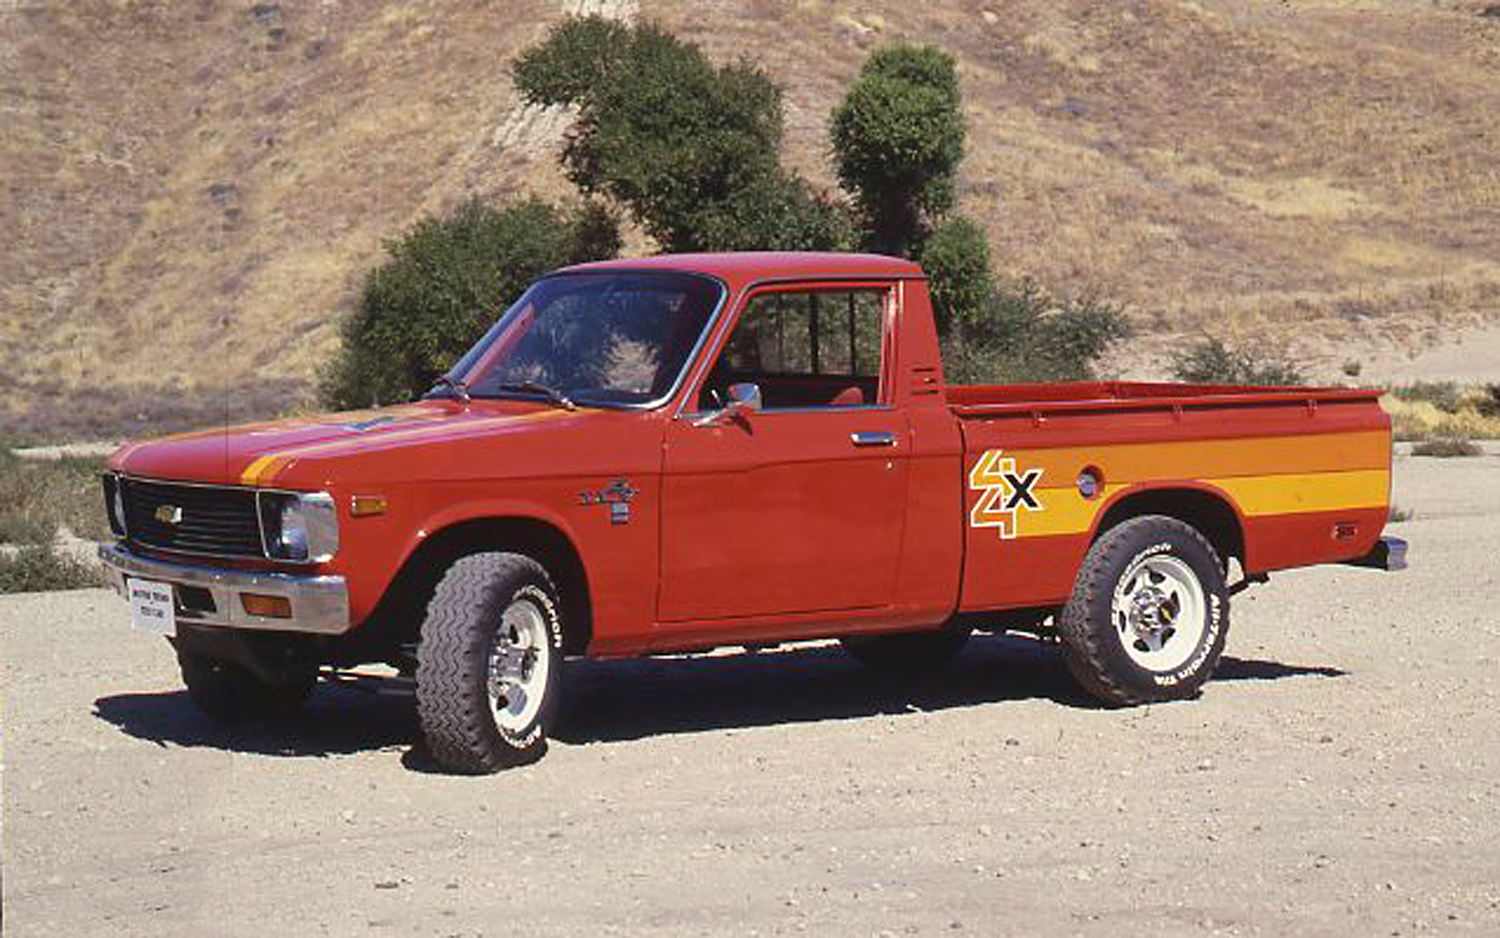 79 Chevy Luv Fuse Box Electrical Wiring Diagrams On 1979 Truck Covef Schematic 4x4 Trucks Silverado Diagram Diy